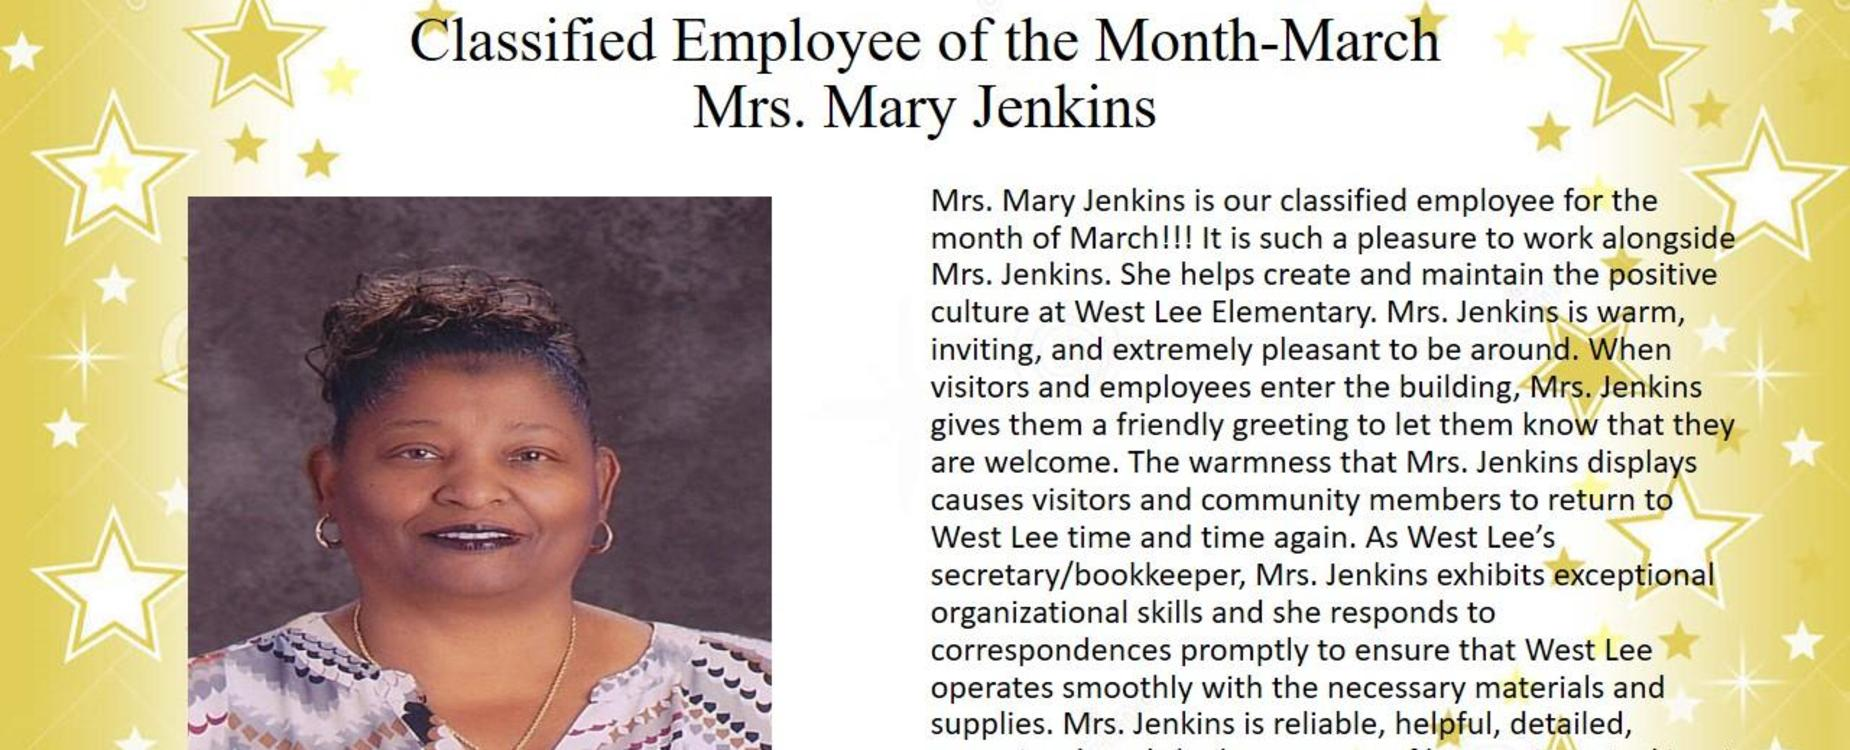 Classified Employee of the Month for March- Mrs. Mary Jenkins, School Secretary